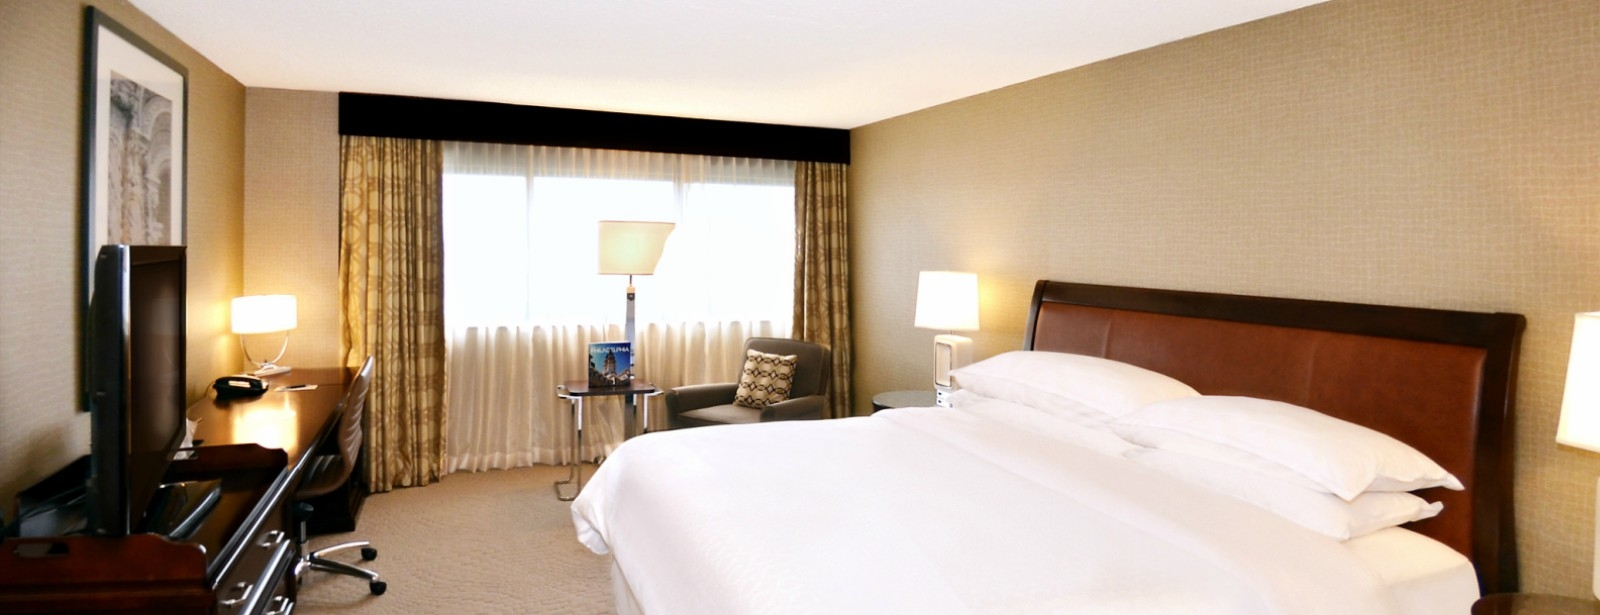 Philadelphia Accommodations - Traditional Deluxe Guest Room